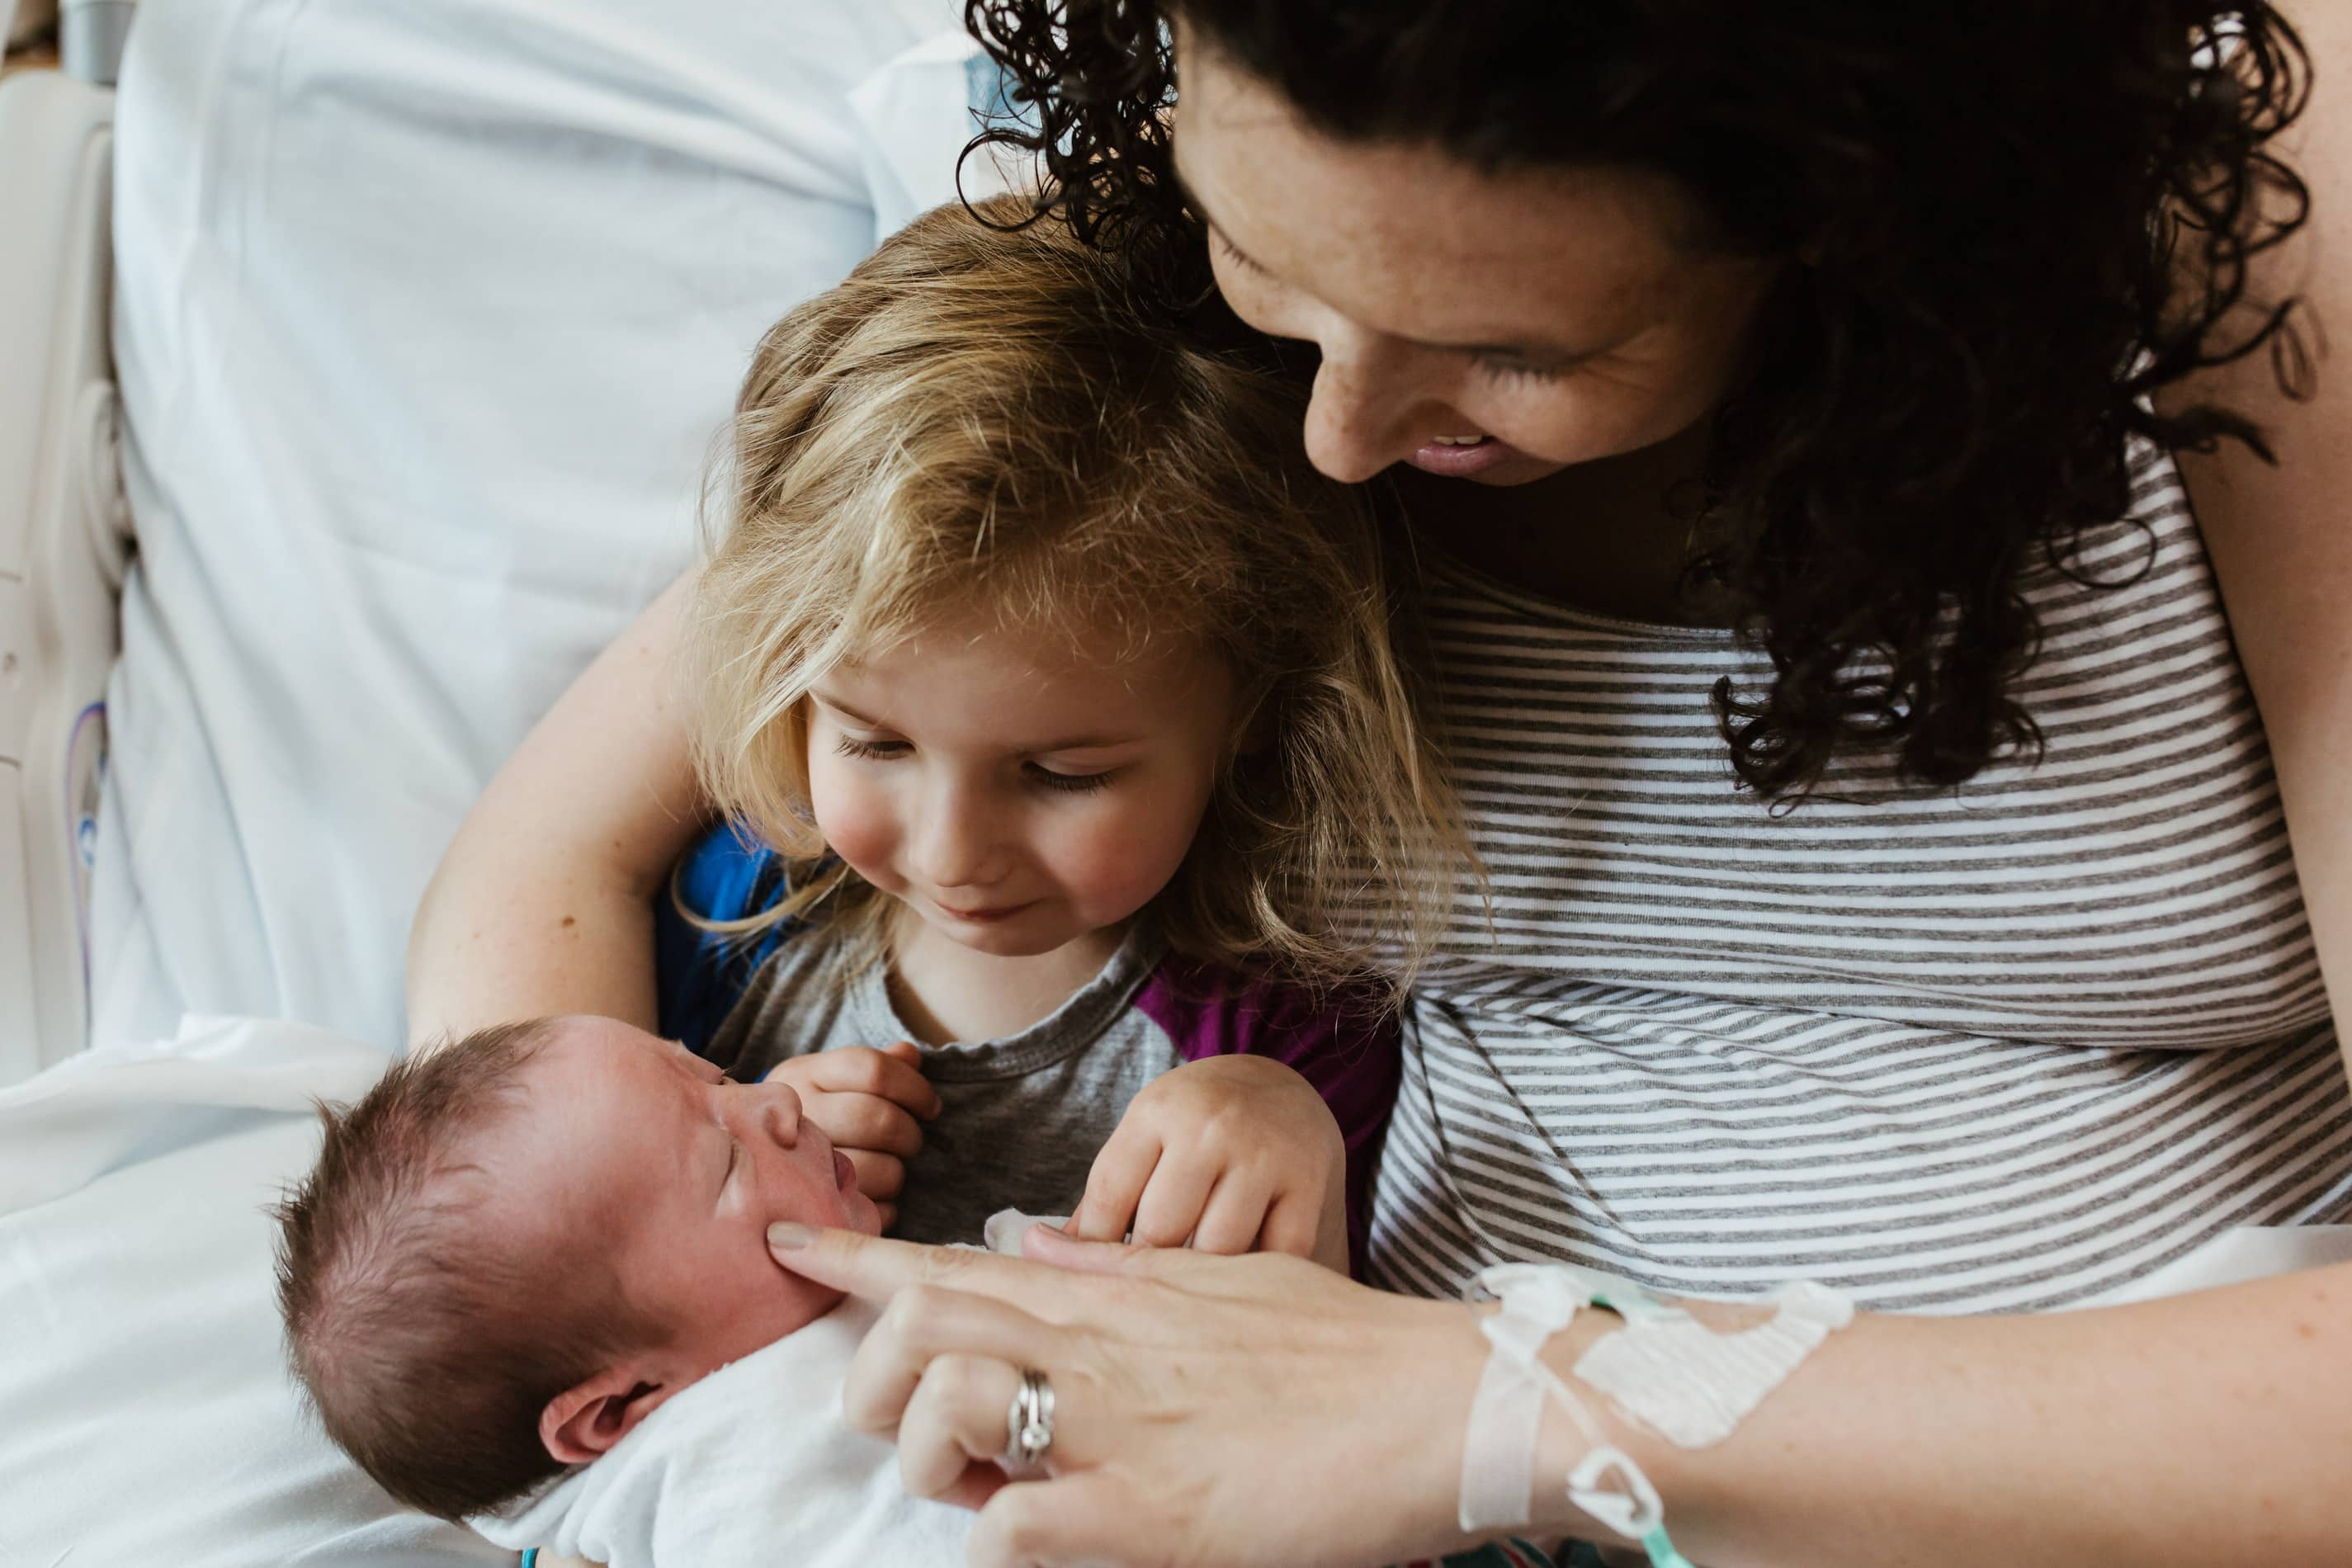 hospital fresh 48 session mom toddler and new baby snuggle in bed together